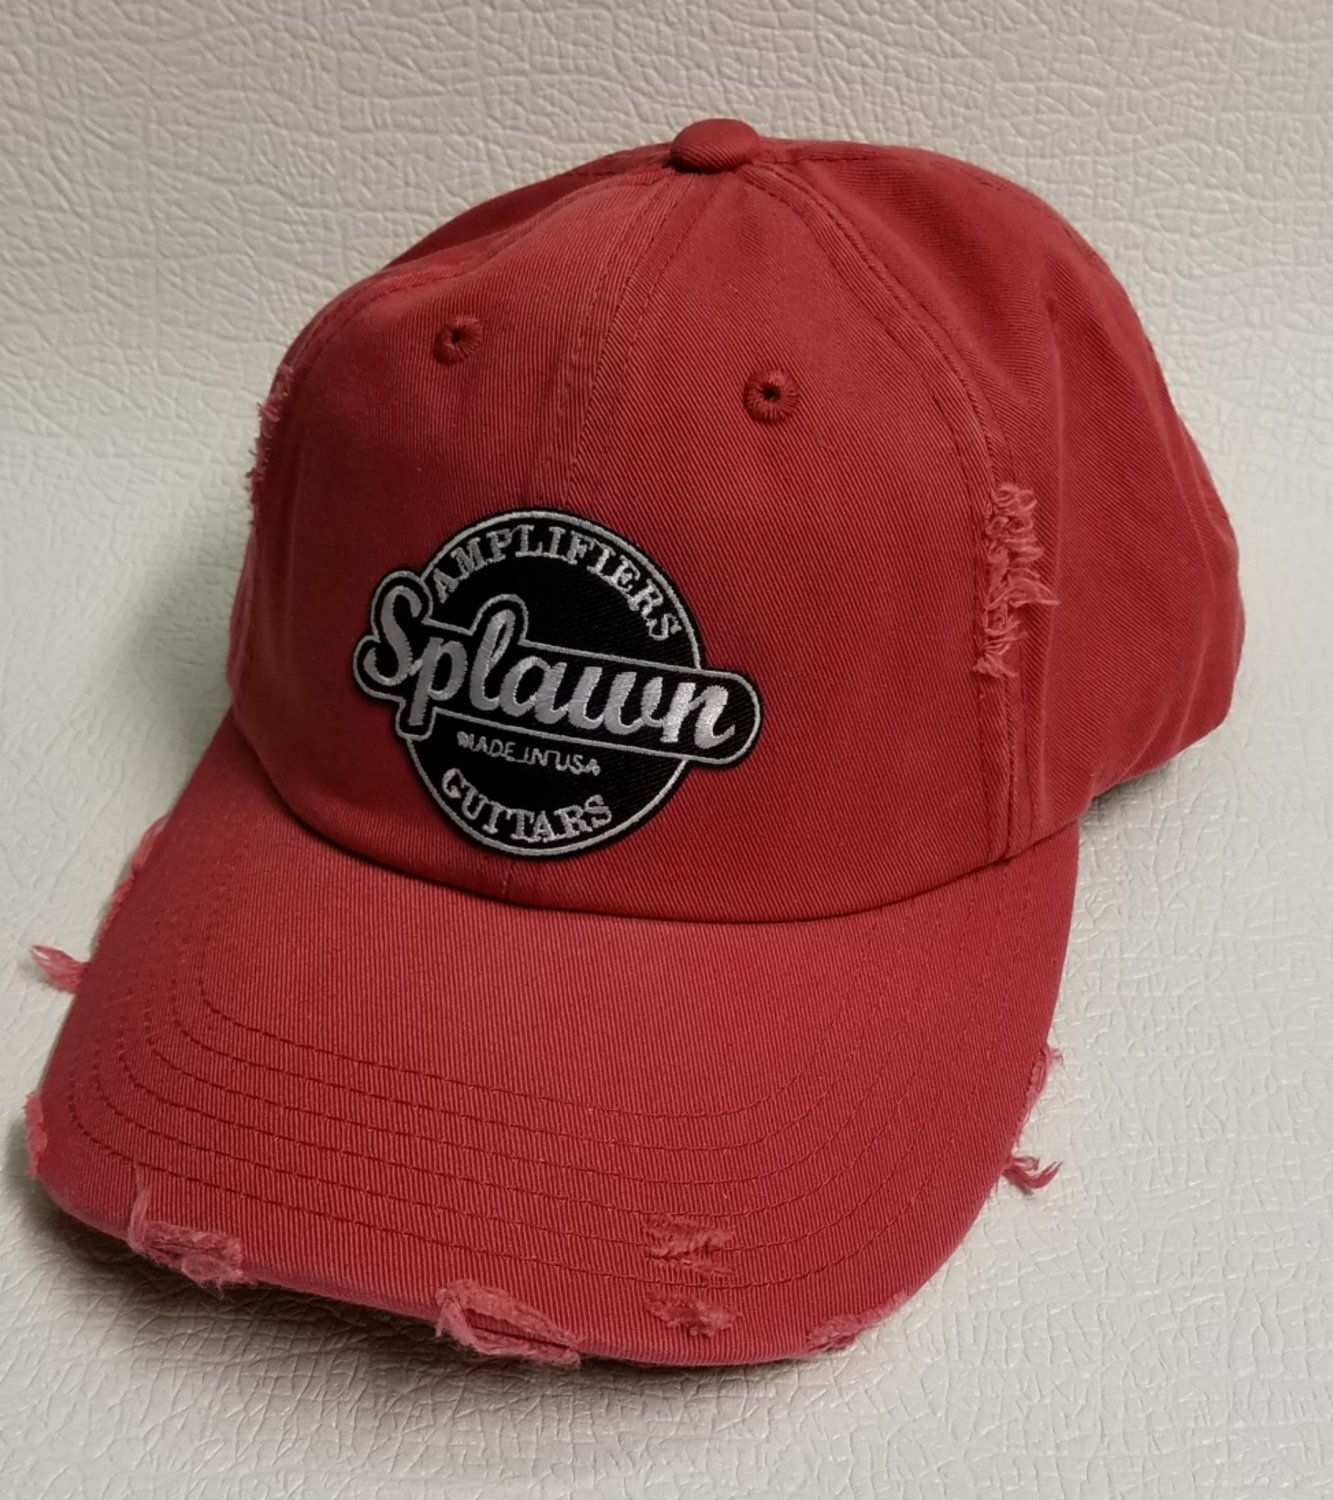 Splawn Amplification Guitars Center Logo District DT600 Distress Cap Dashing Red